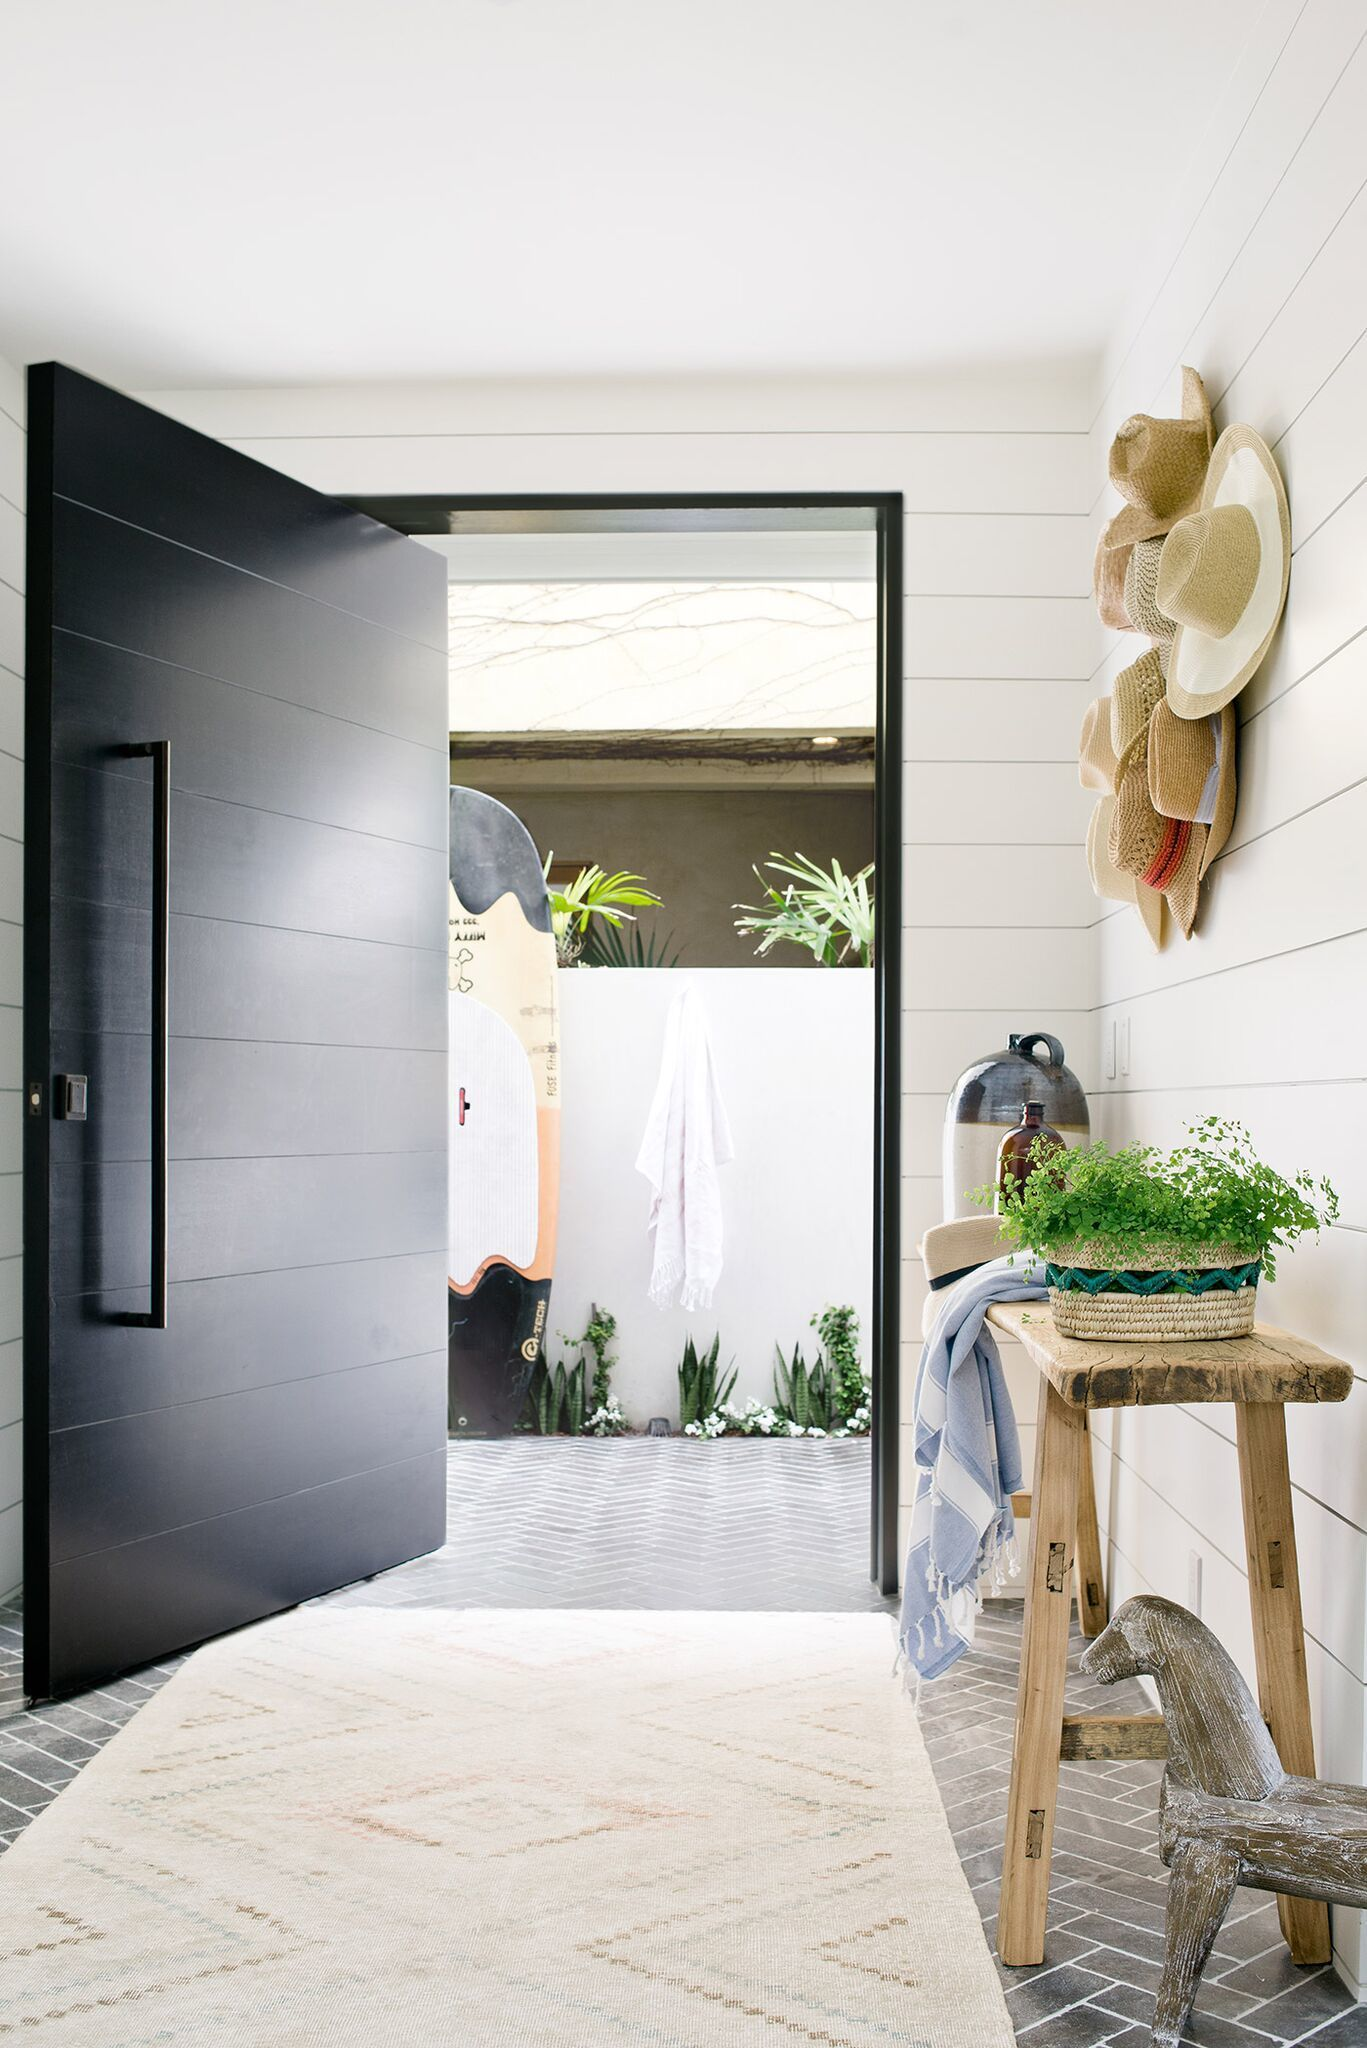 Best Kitchen Gallery: How To Make An Entrance Part I Gray Malin Tips Tricks of Make New Home Entry on rachelxblog.com